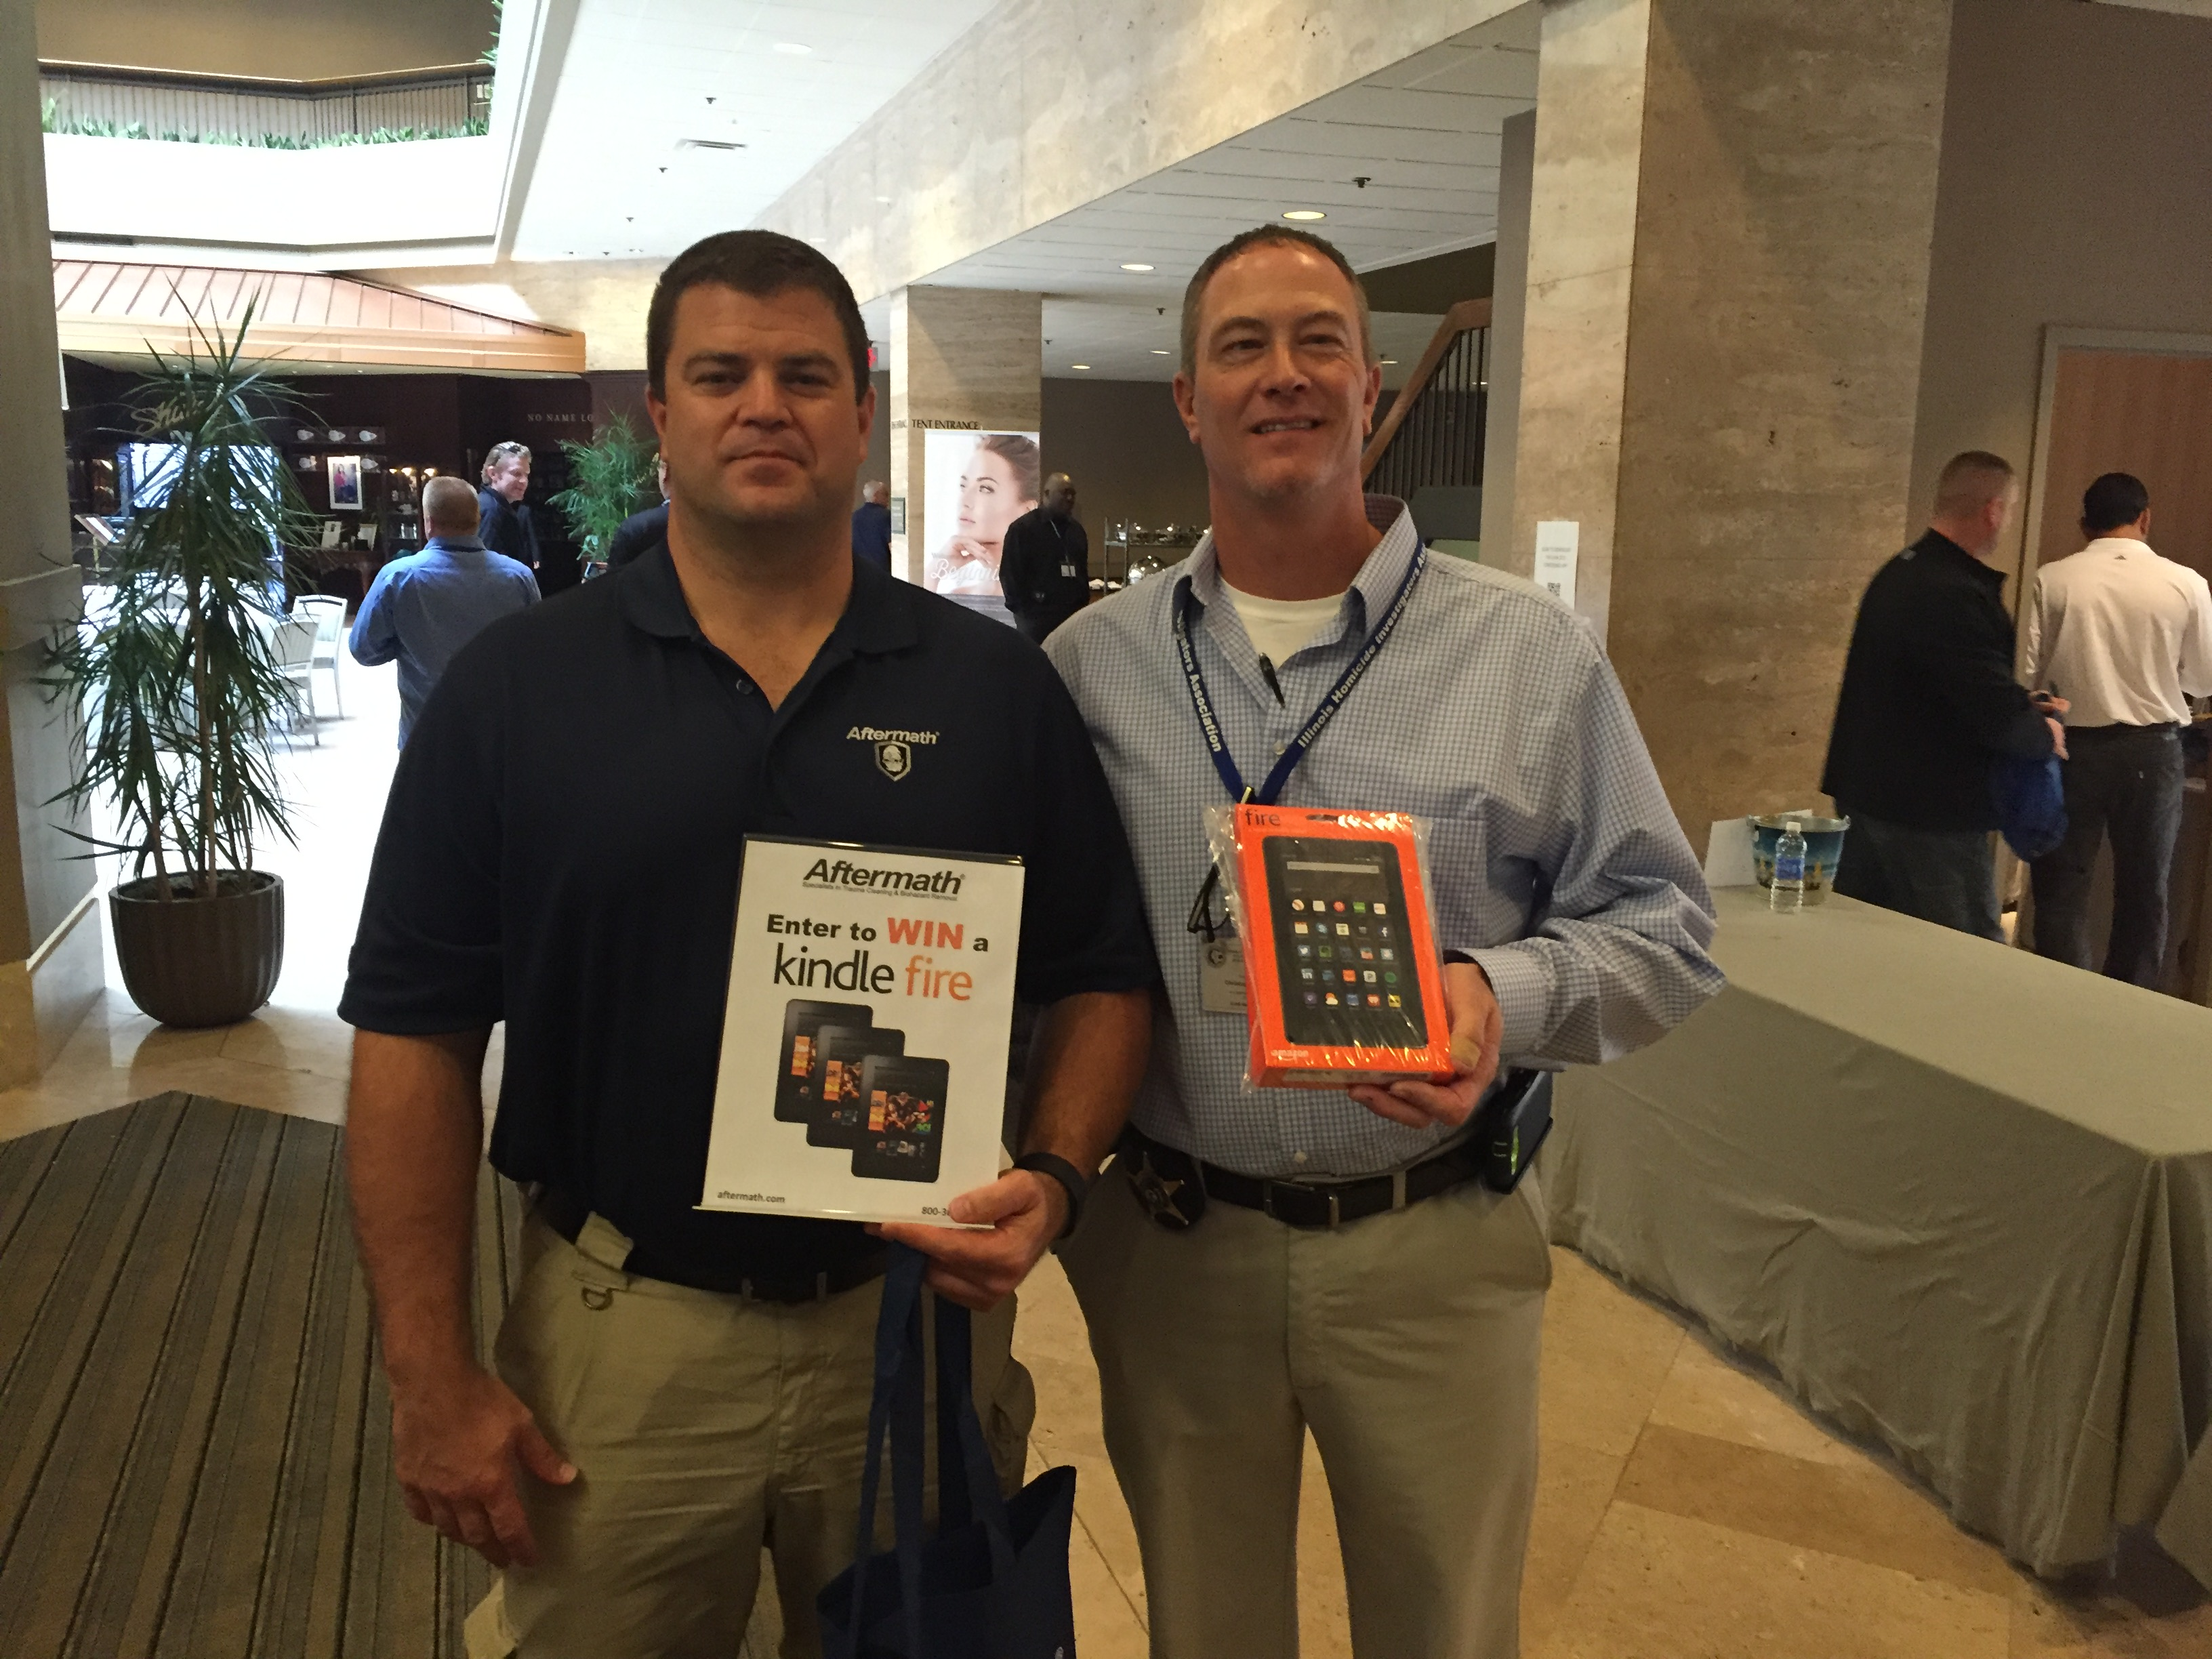 Winners of Kindle Fire giveaway at Illinois Homicide Inv. Assoc. Conf.